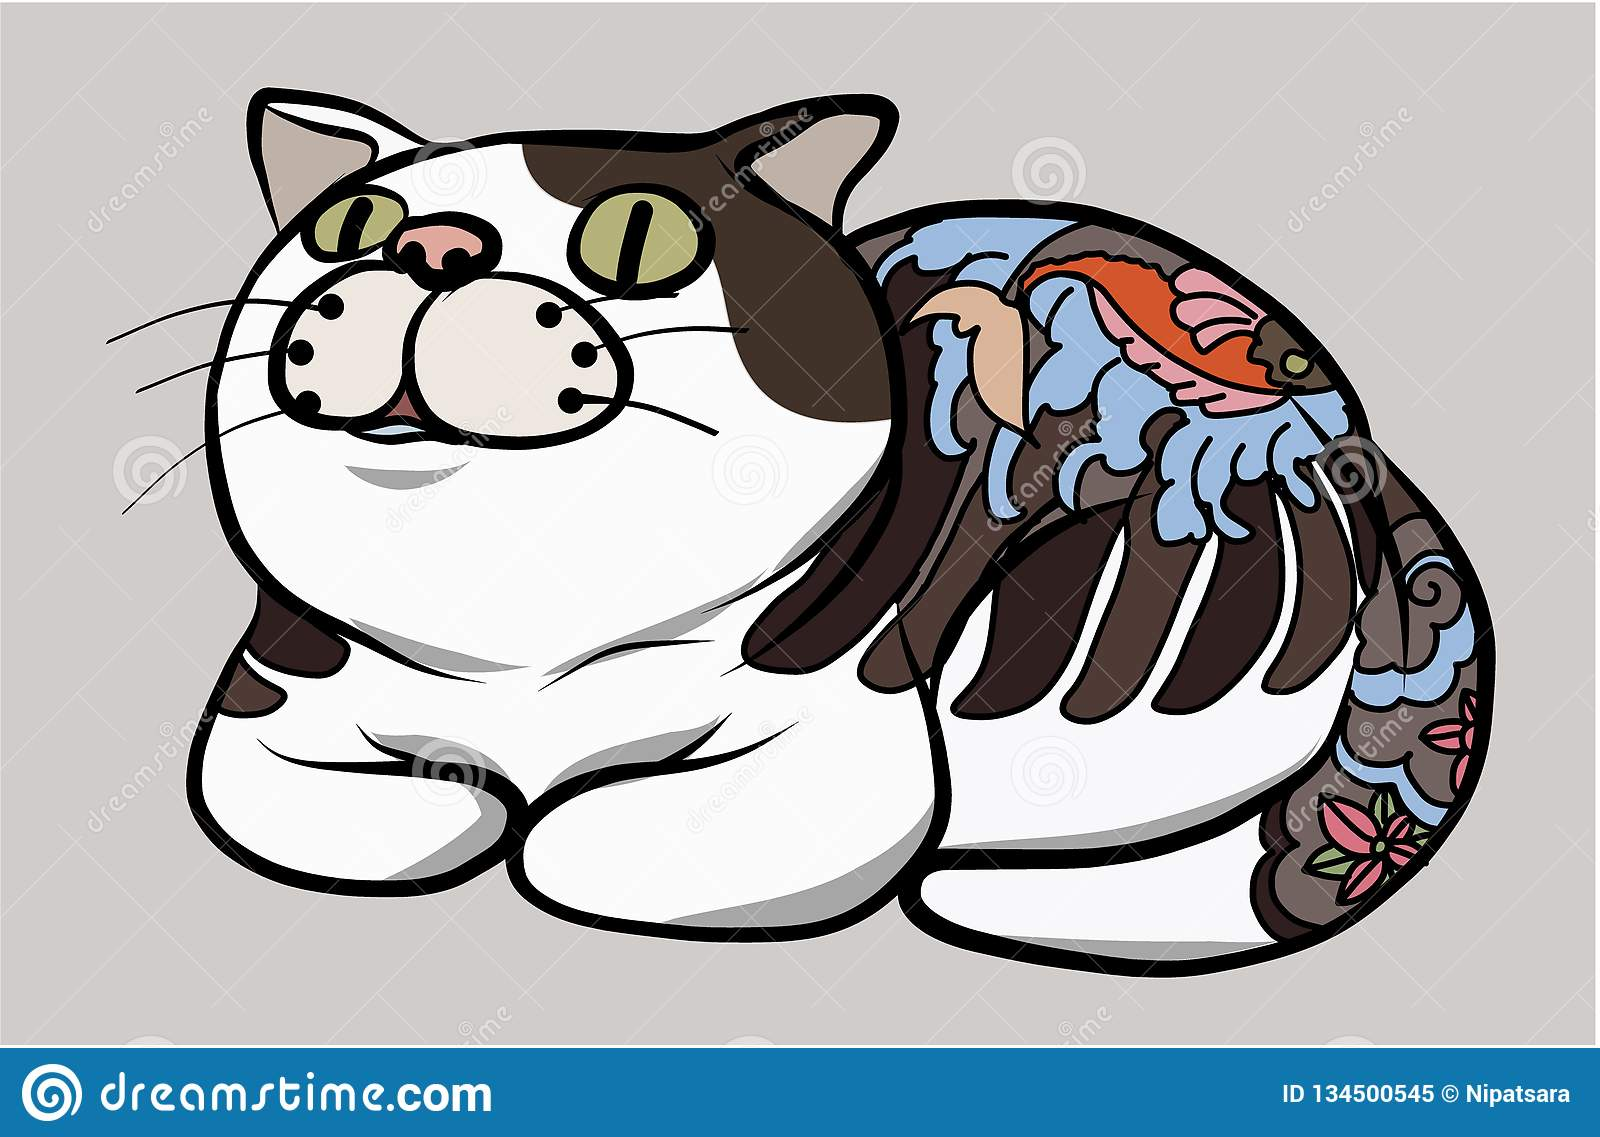 0a90ad331 Japanese Cute Cat With Traditional Tattoo.Hand Drawn Cat Vector ...